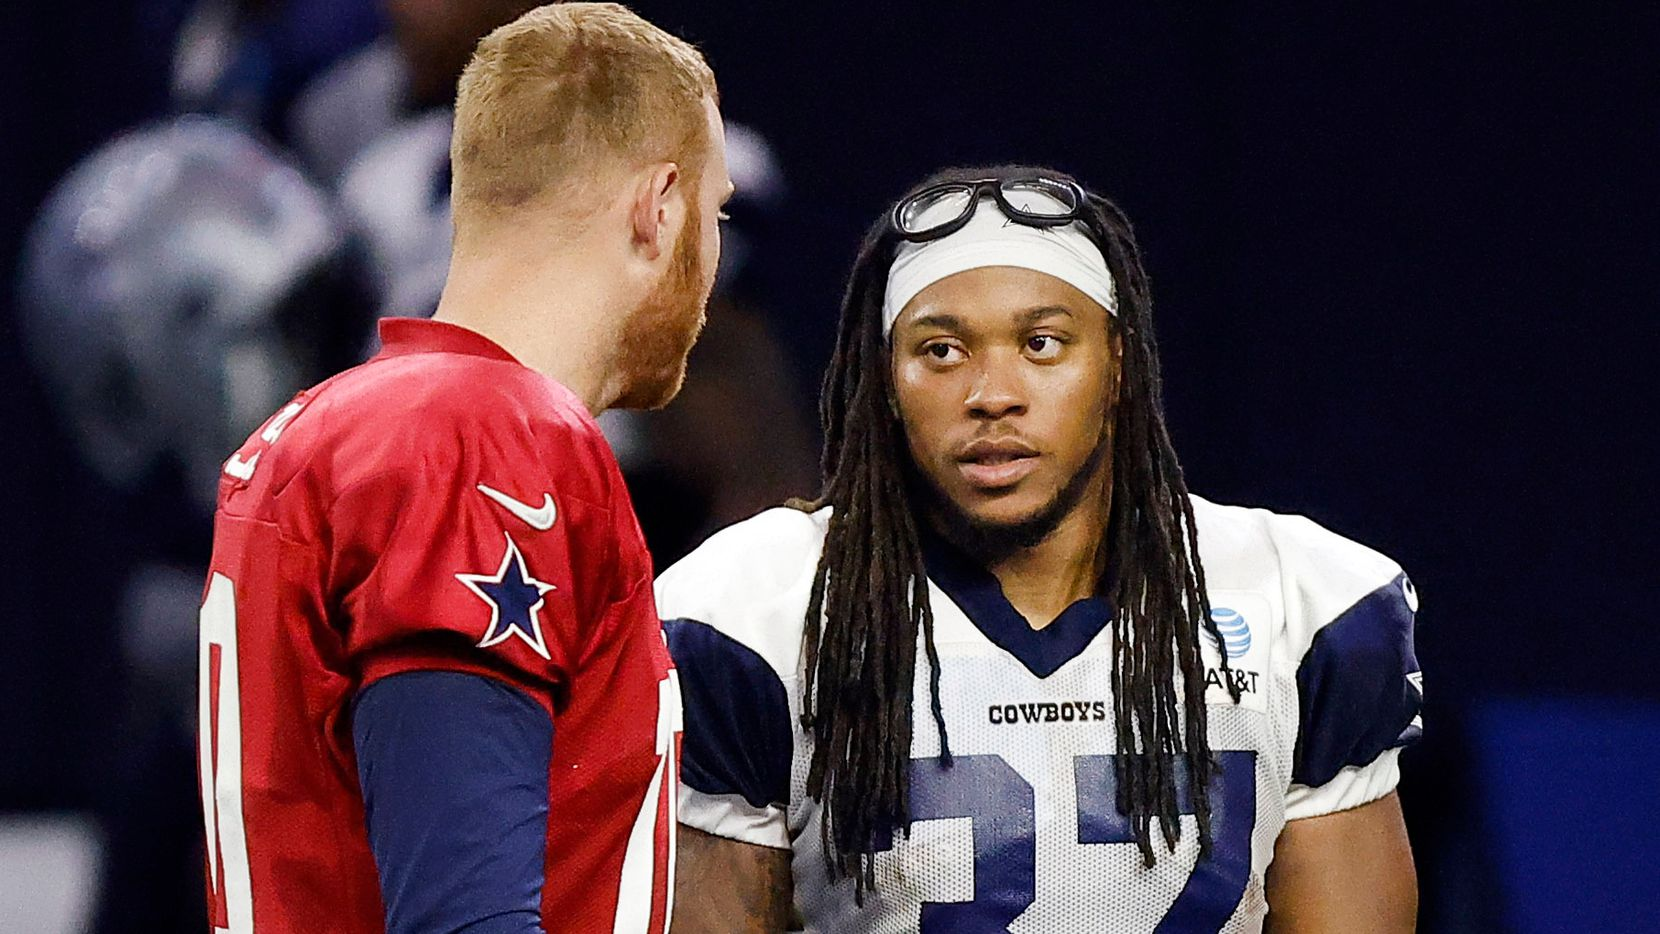 Dallas Cowboys running back JaQuan Hardy (37) visits with Dallas Cowboys quarterback Cooper Rush (10) following Training Camp practice at The Star in Frisco, Texas, Friday, August 27, 2021.